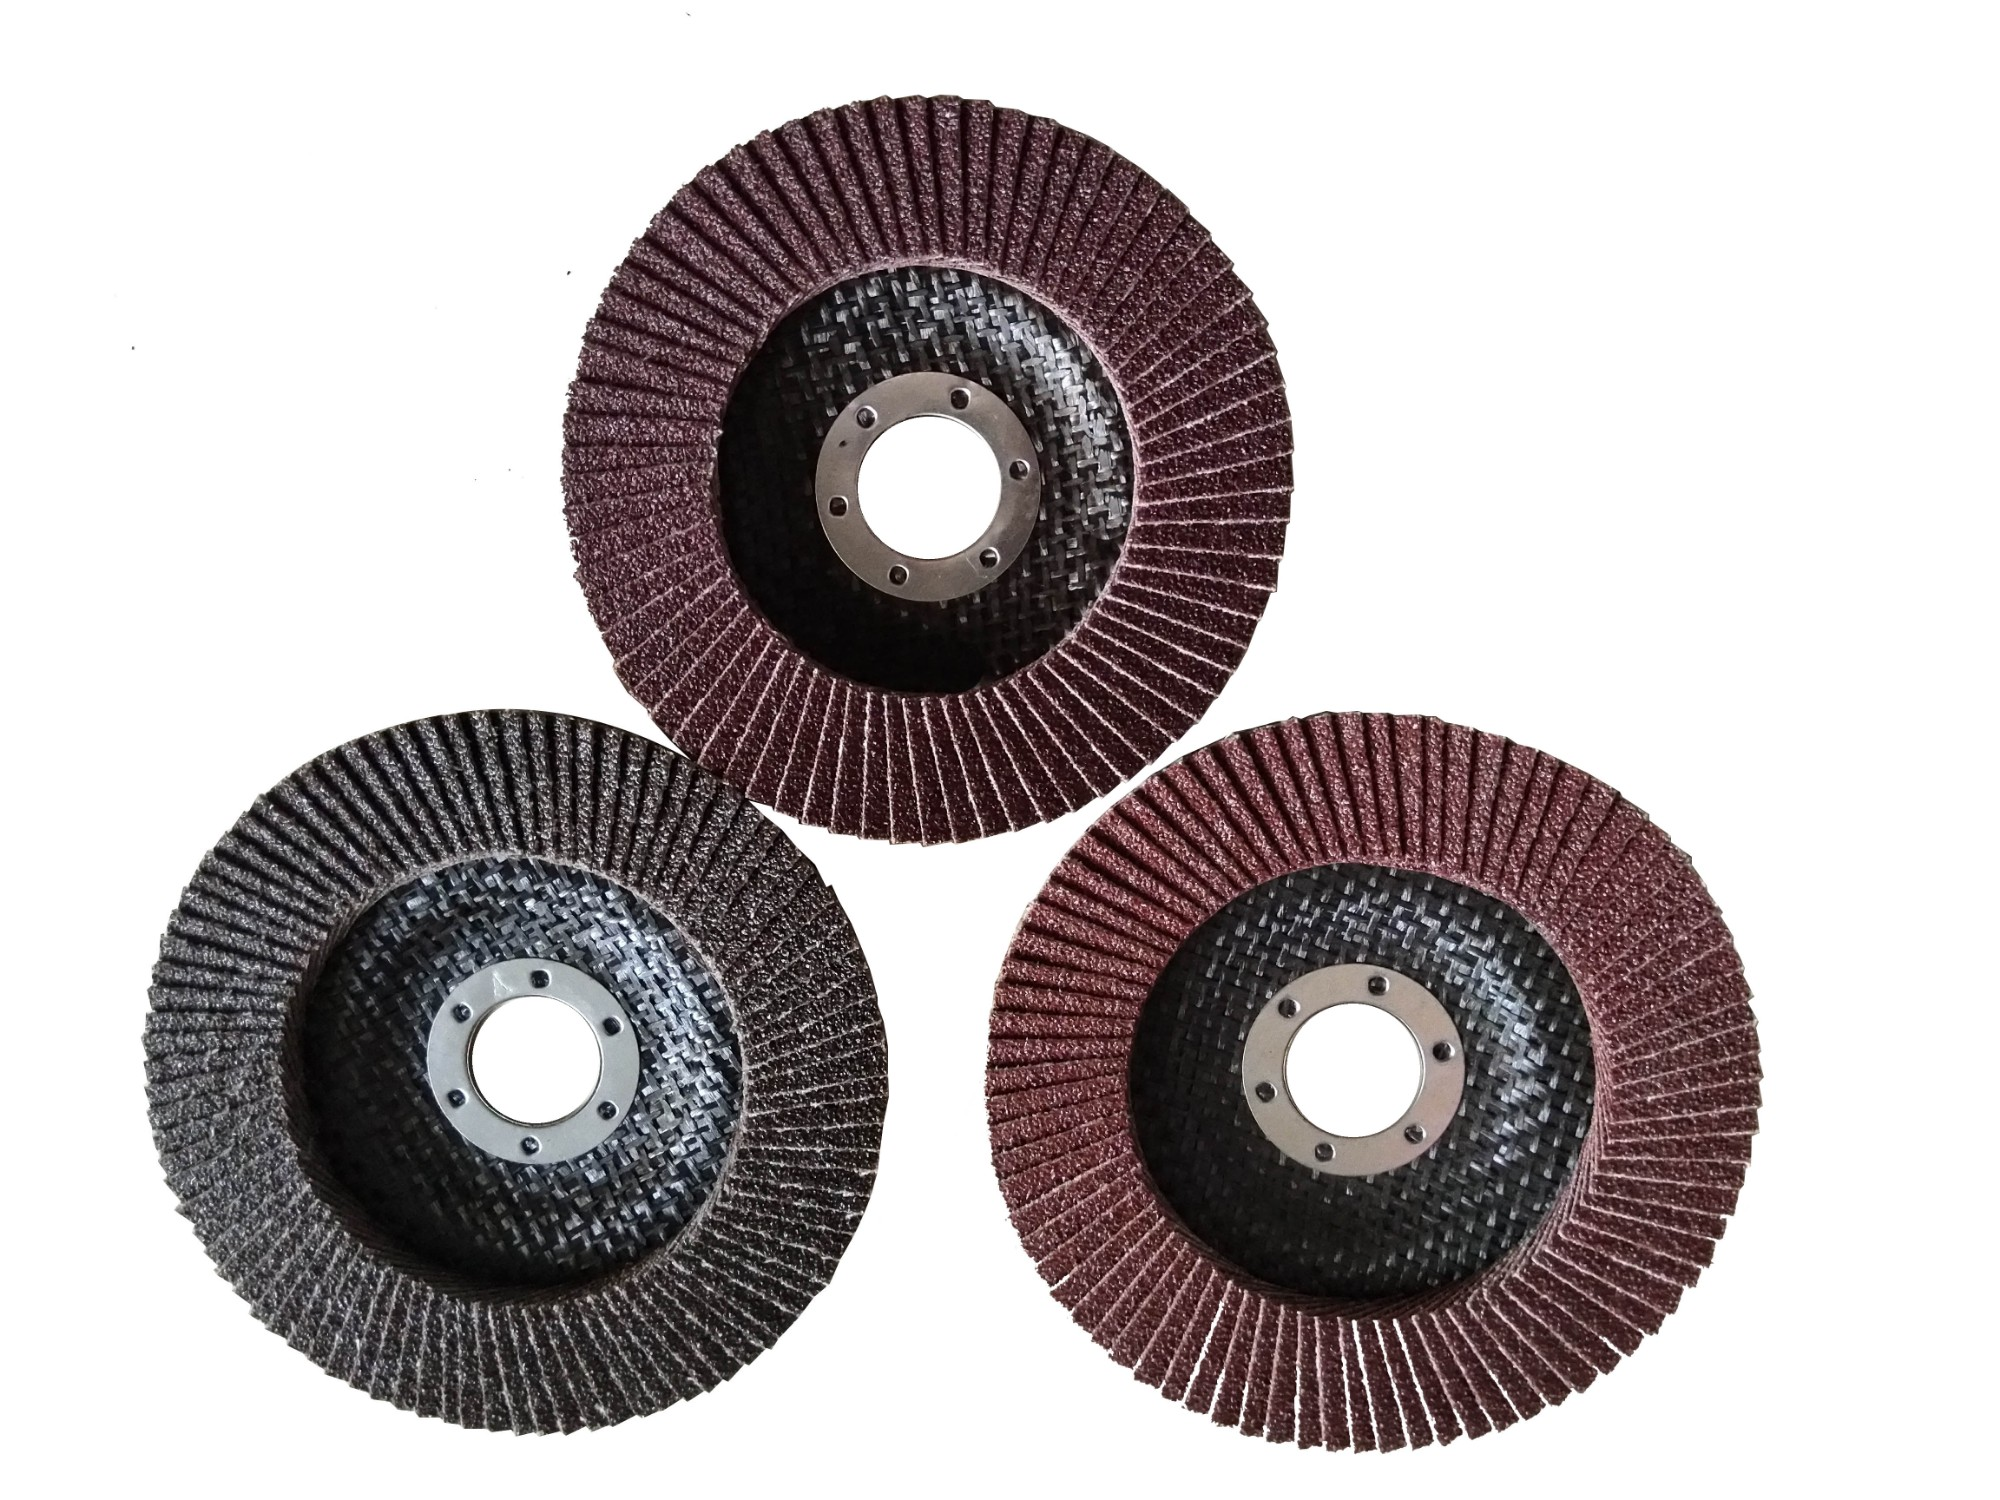 Double Net Abrasive Cutting Disc Manufacturers, Double Net Abrasive Cutting Disc Factory, Supply Double Net Abrasive Cutting Disc